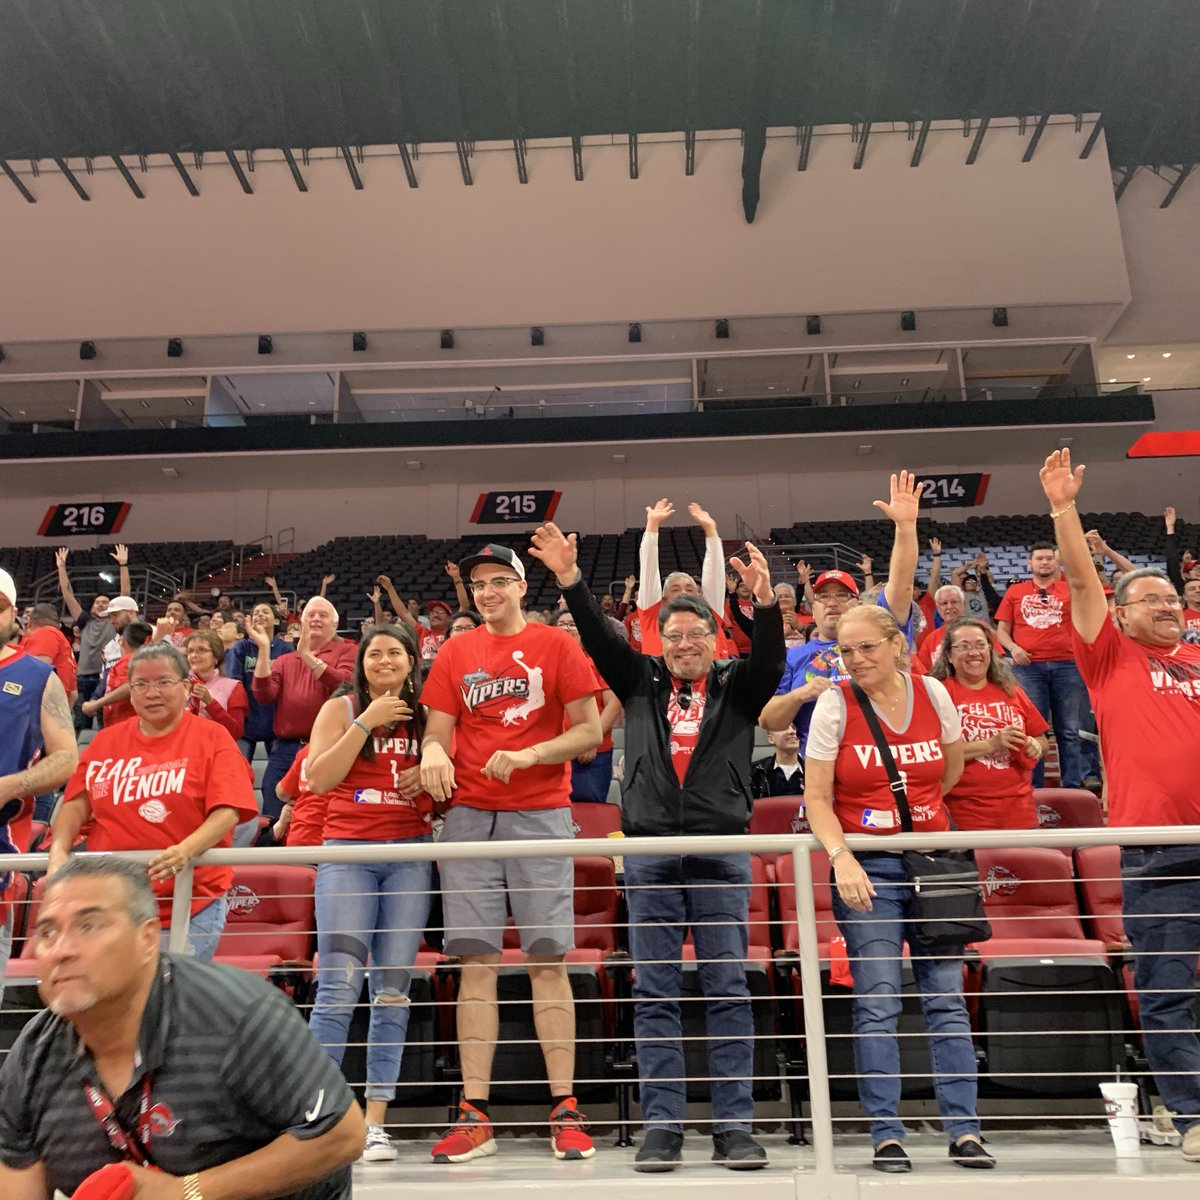 RGV Vipers (@RGVVipers) | Twitter